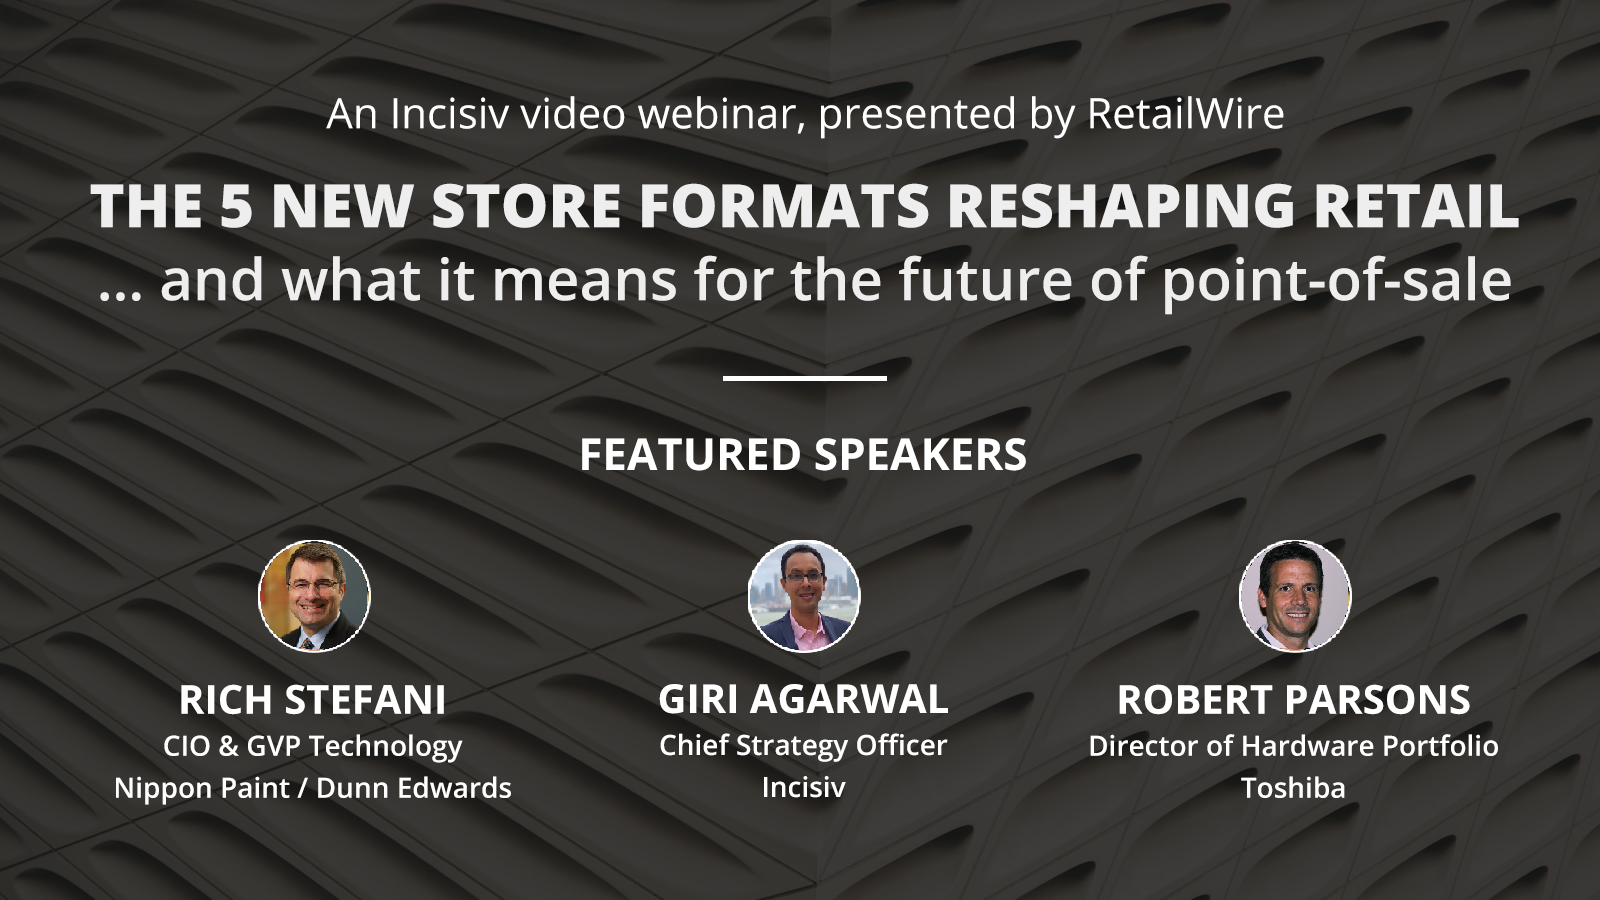 The 5 New Store Formats Reshaping Retail